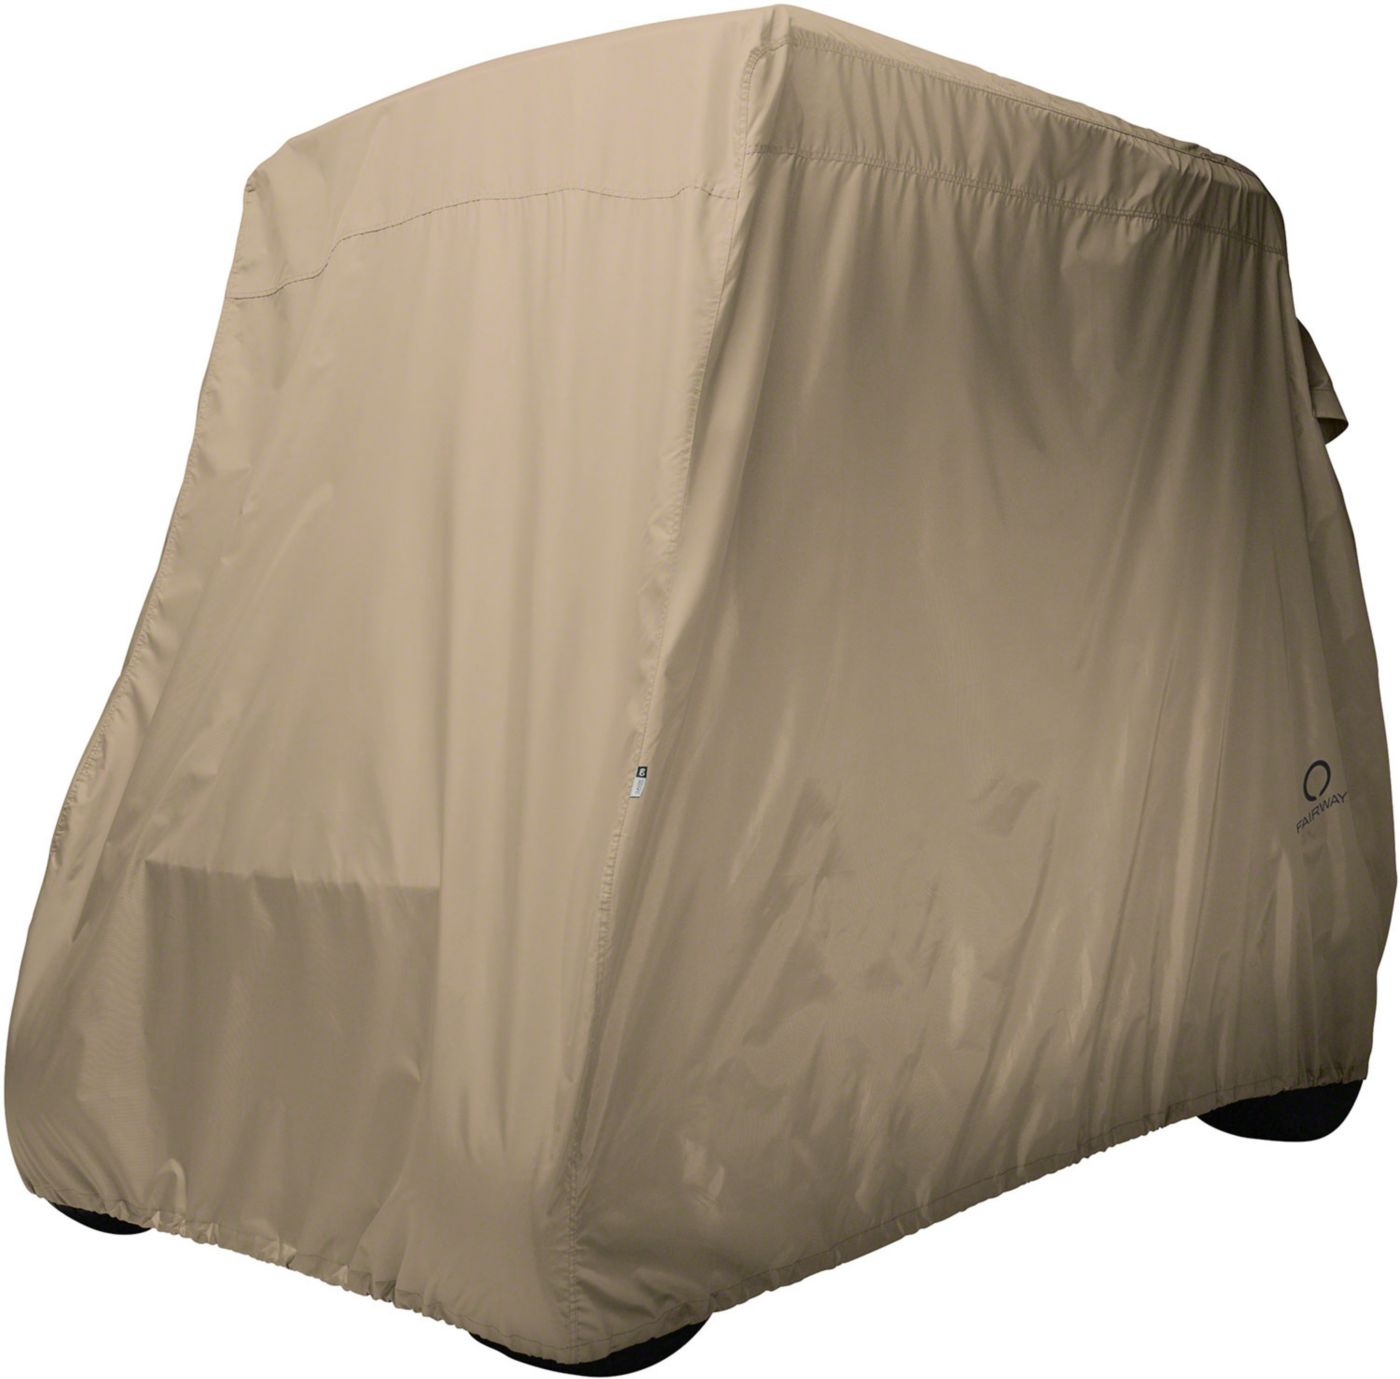 Classic Accessories Fairway Short Golf Cart Cover – Khaki